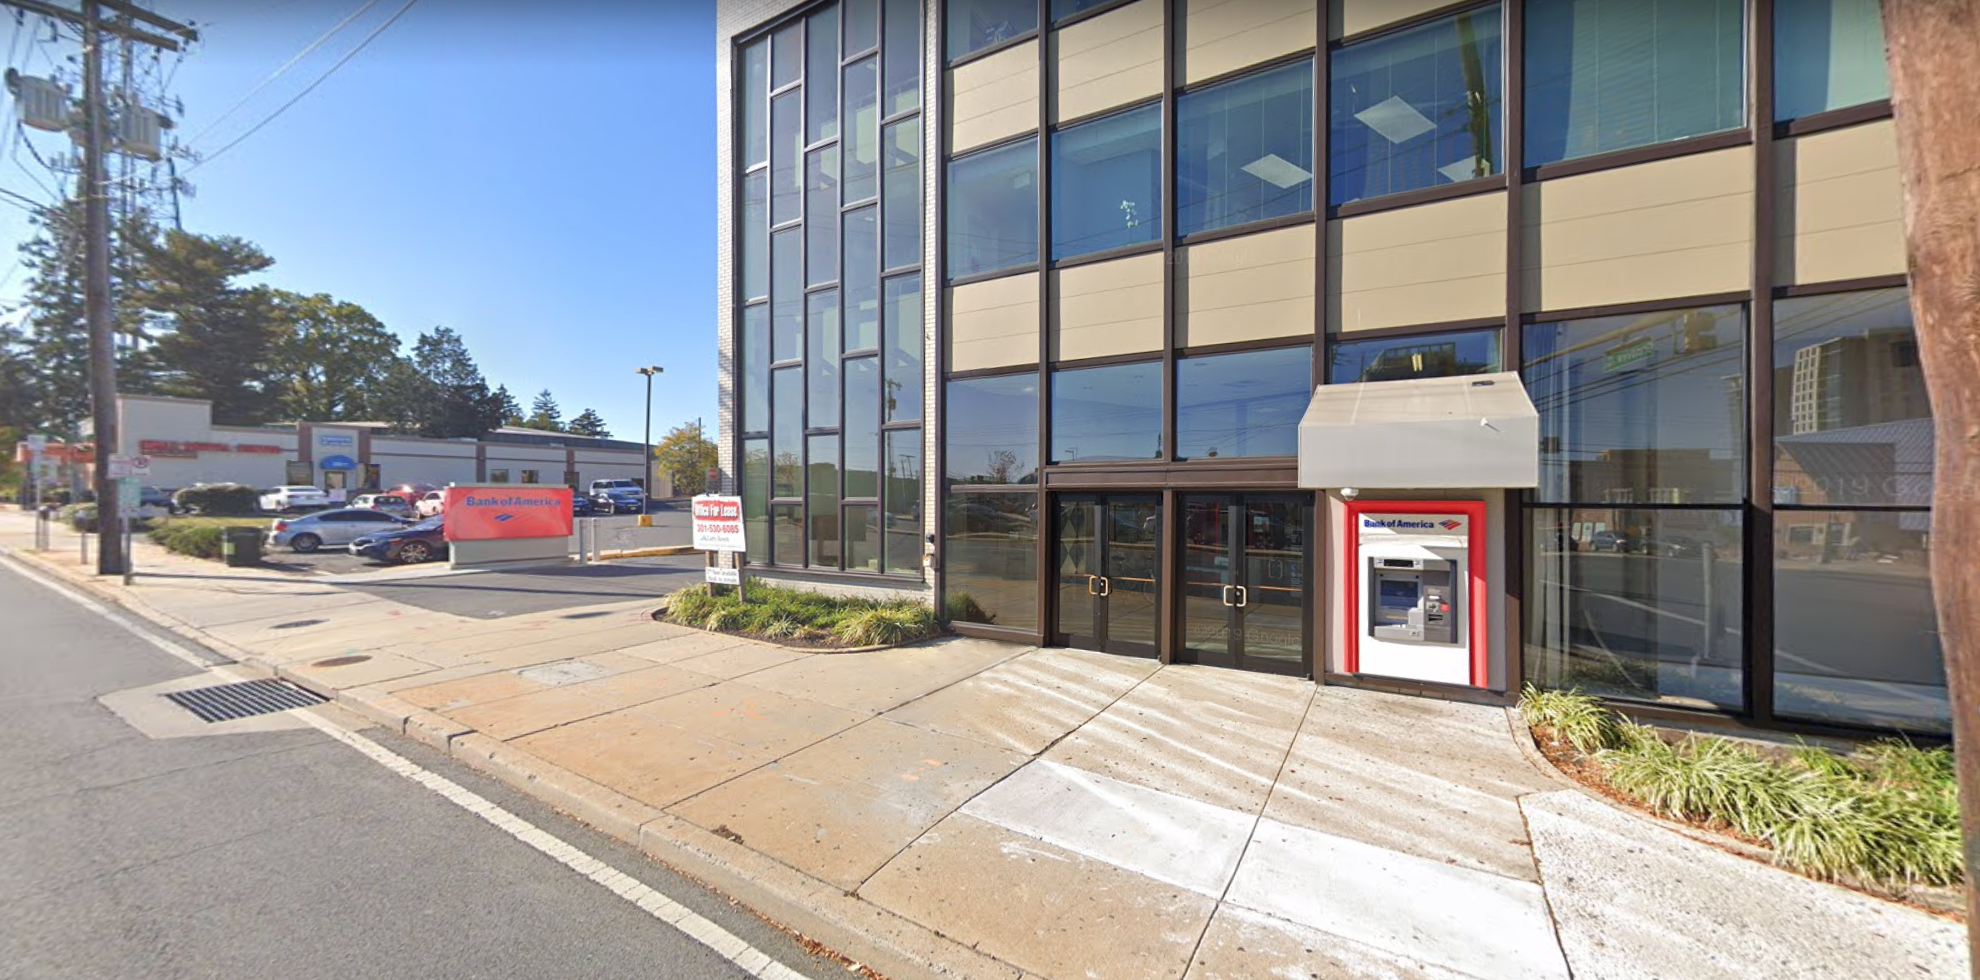 Bank of America financial center with drive-thru ATM and teller | 2601 University Blvd W, Wheaton, MD 20902